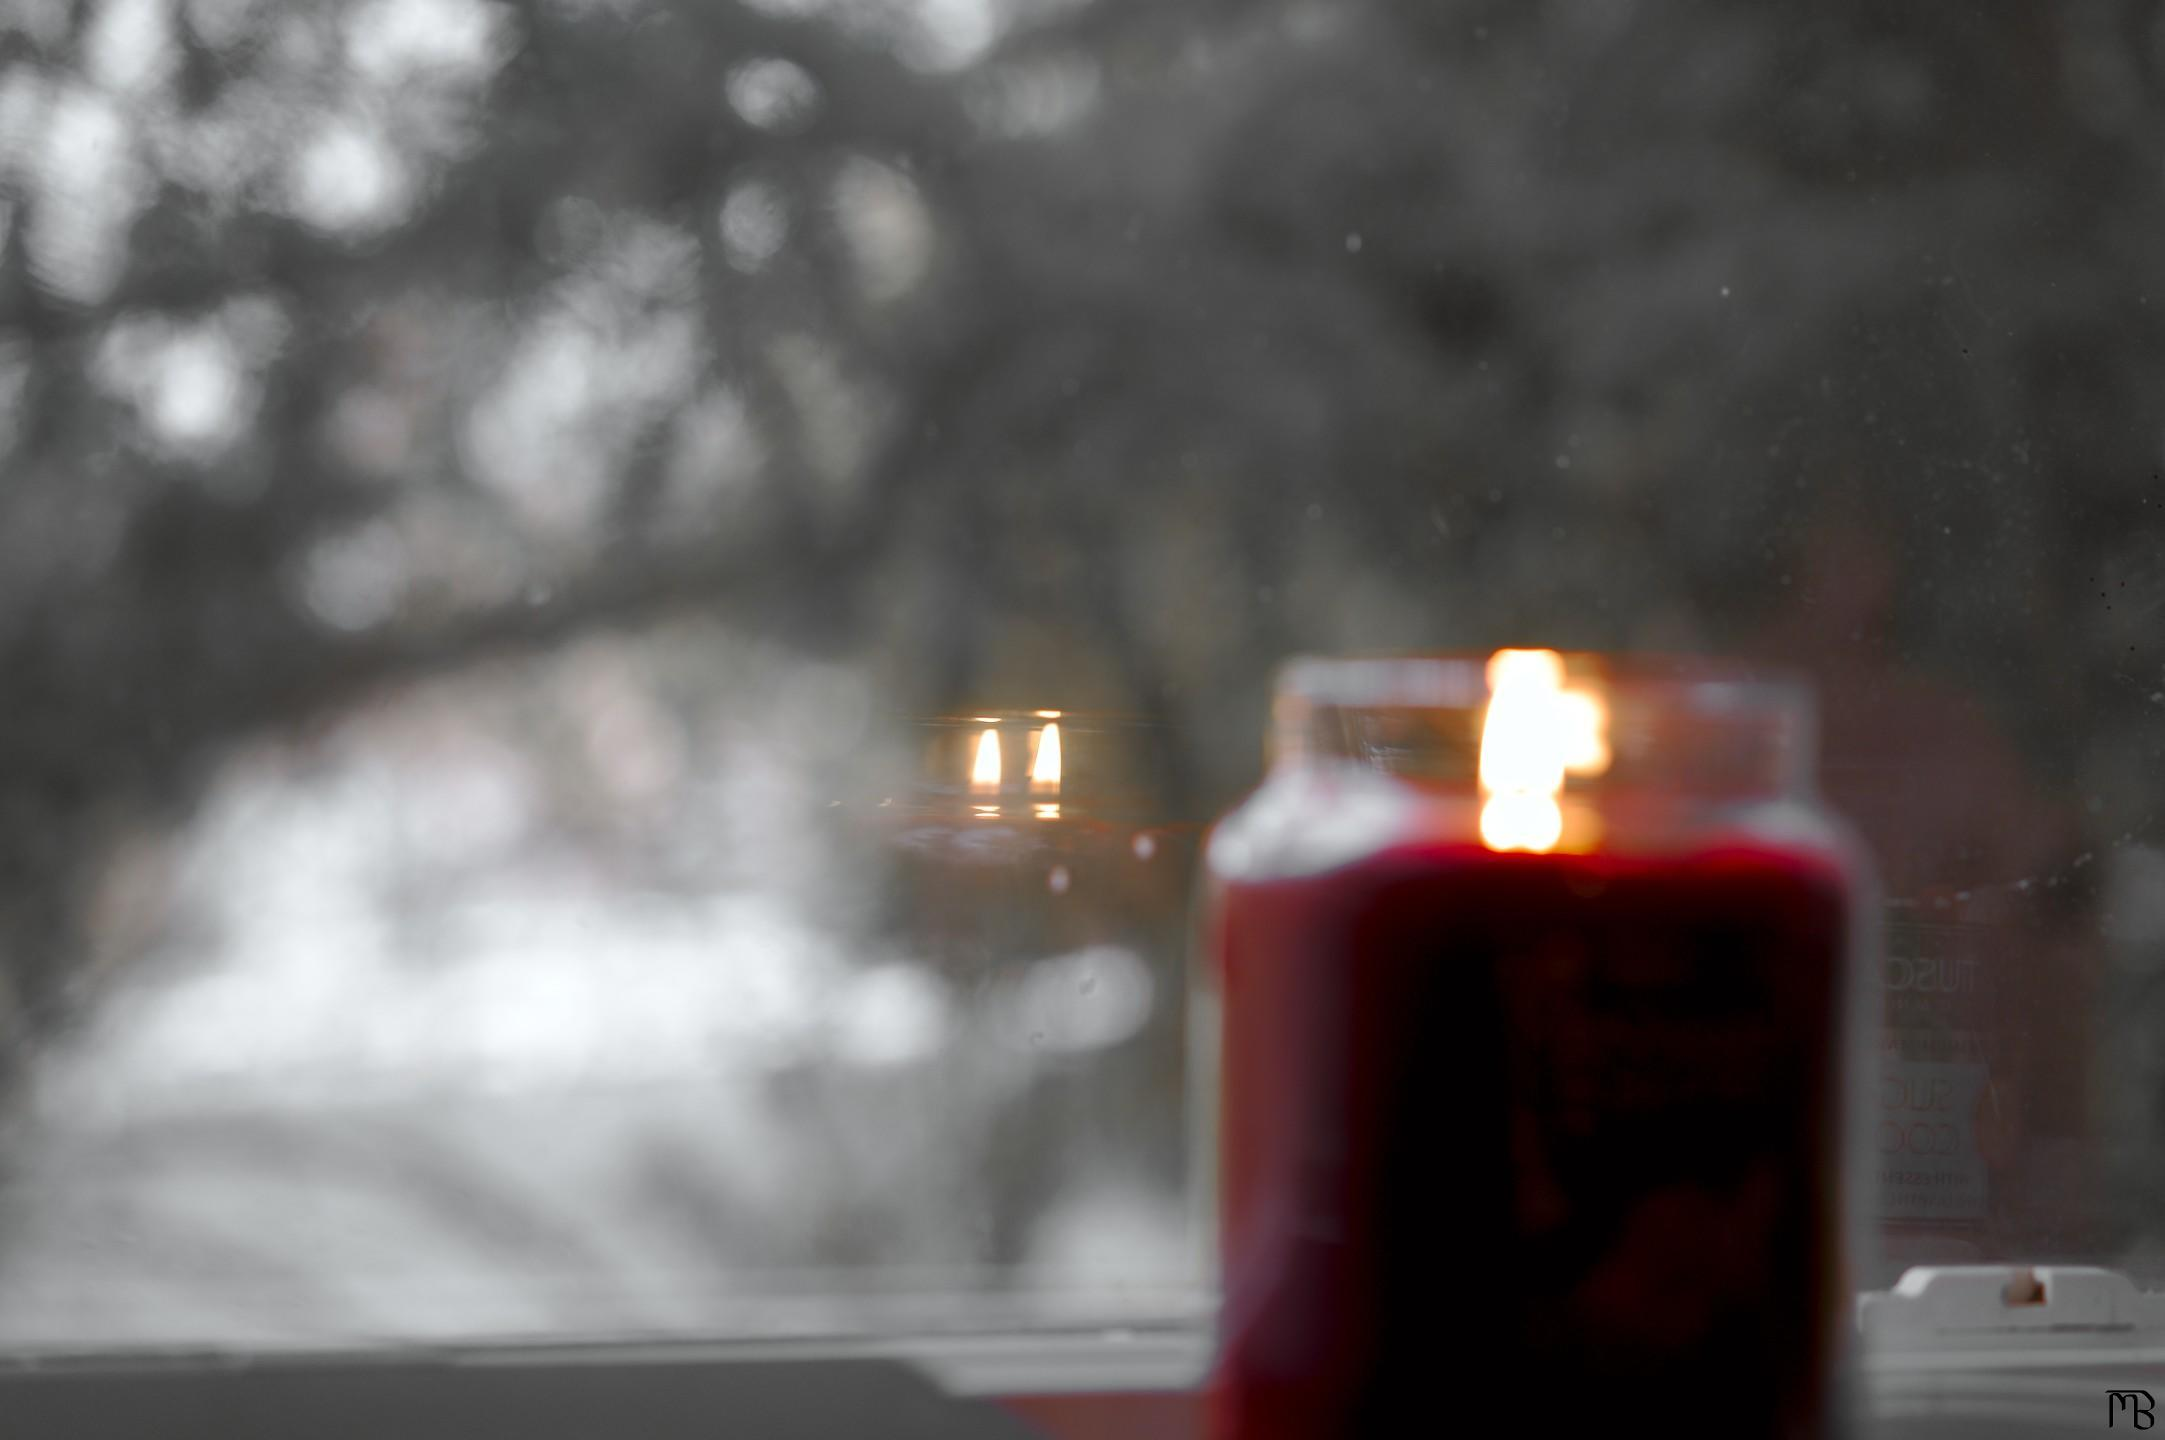 Arty red candle with flame in window reflection